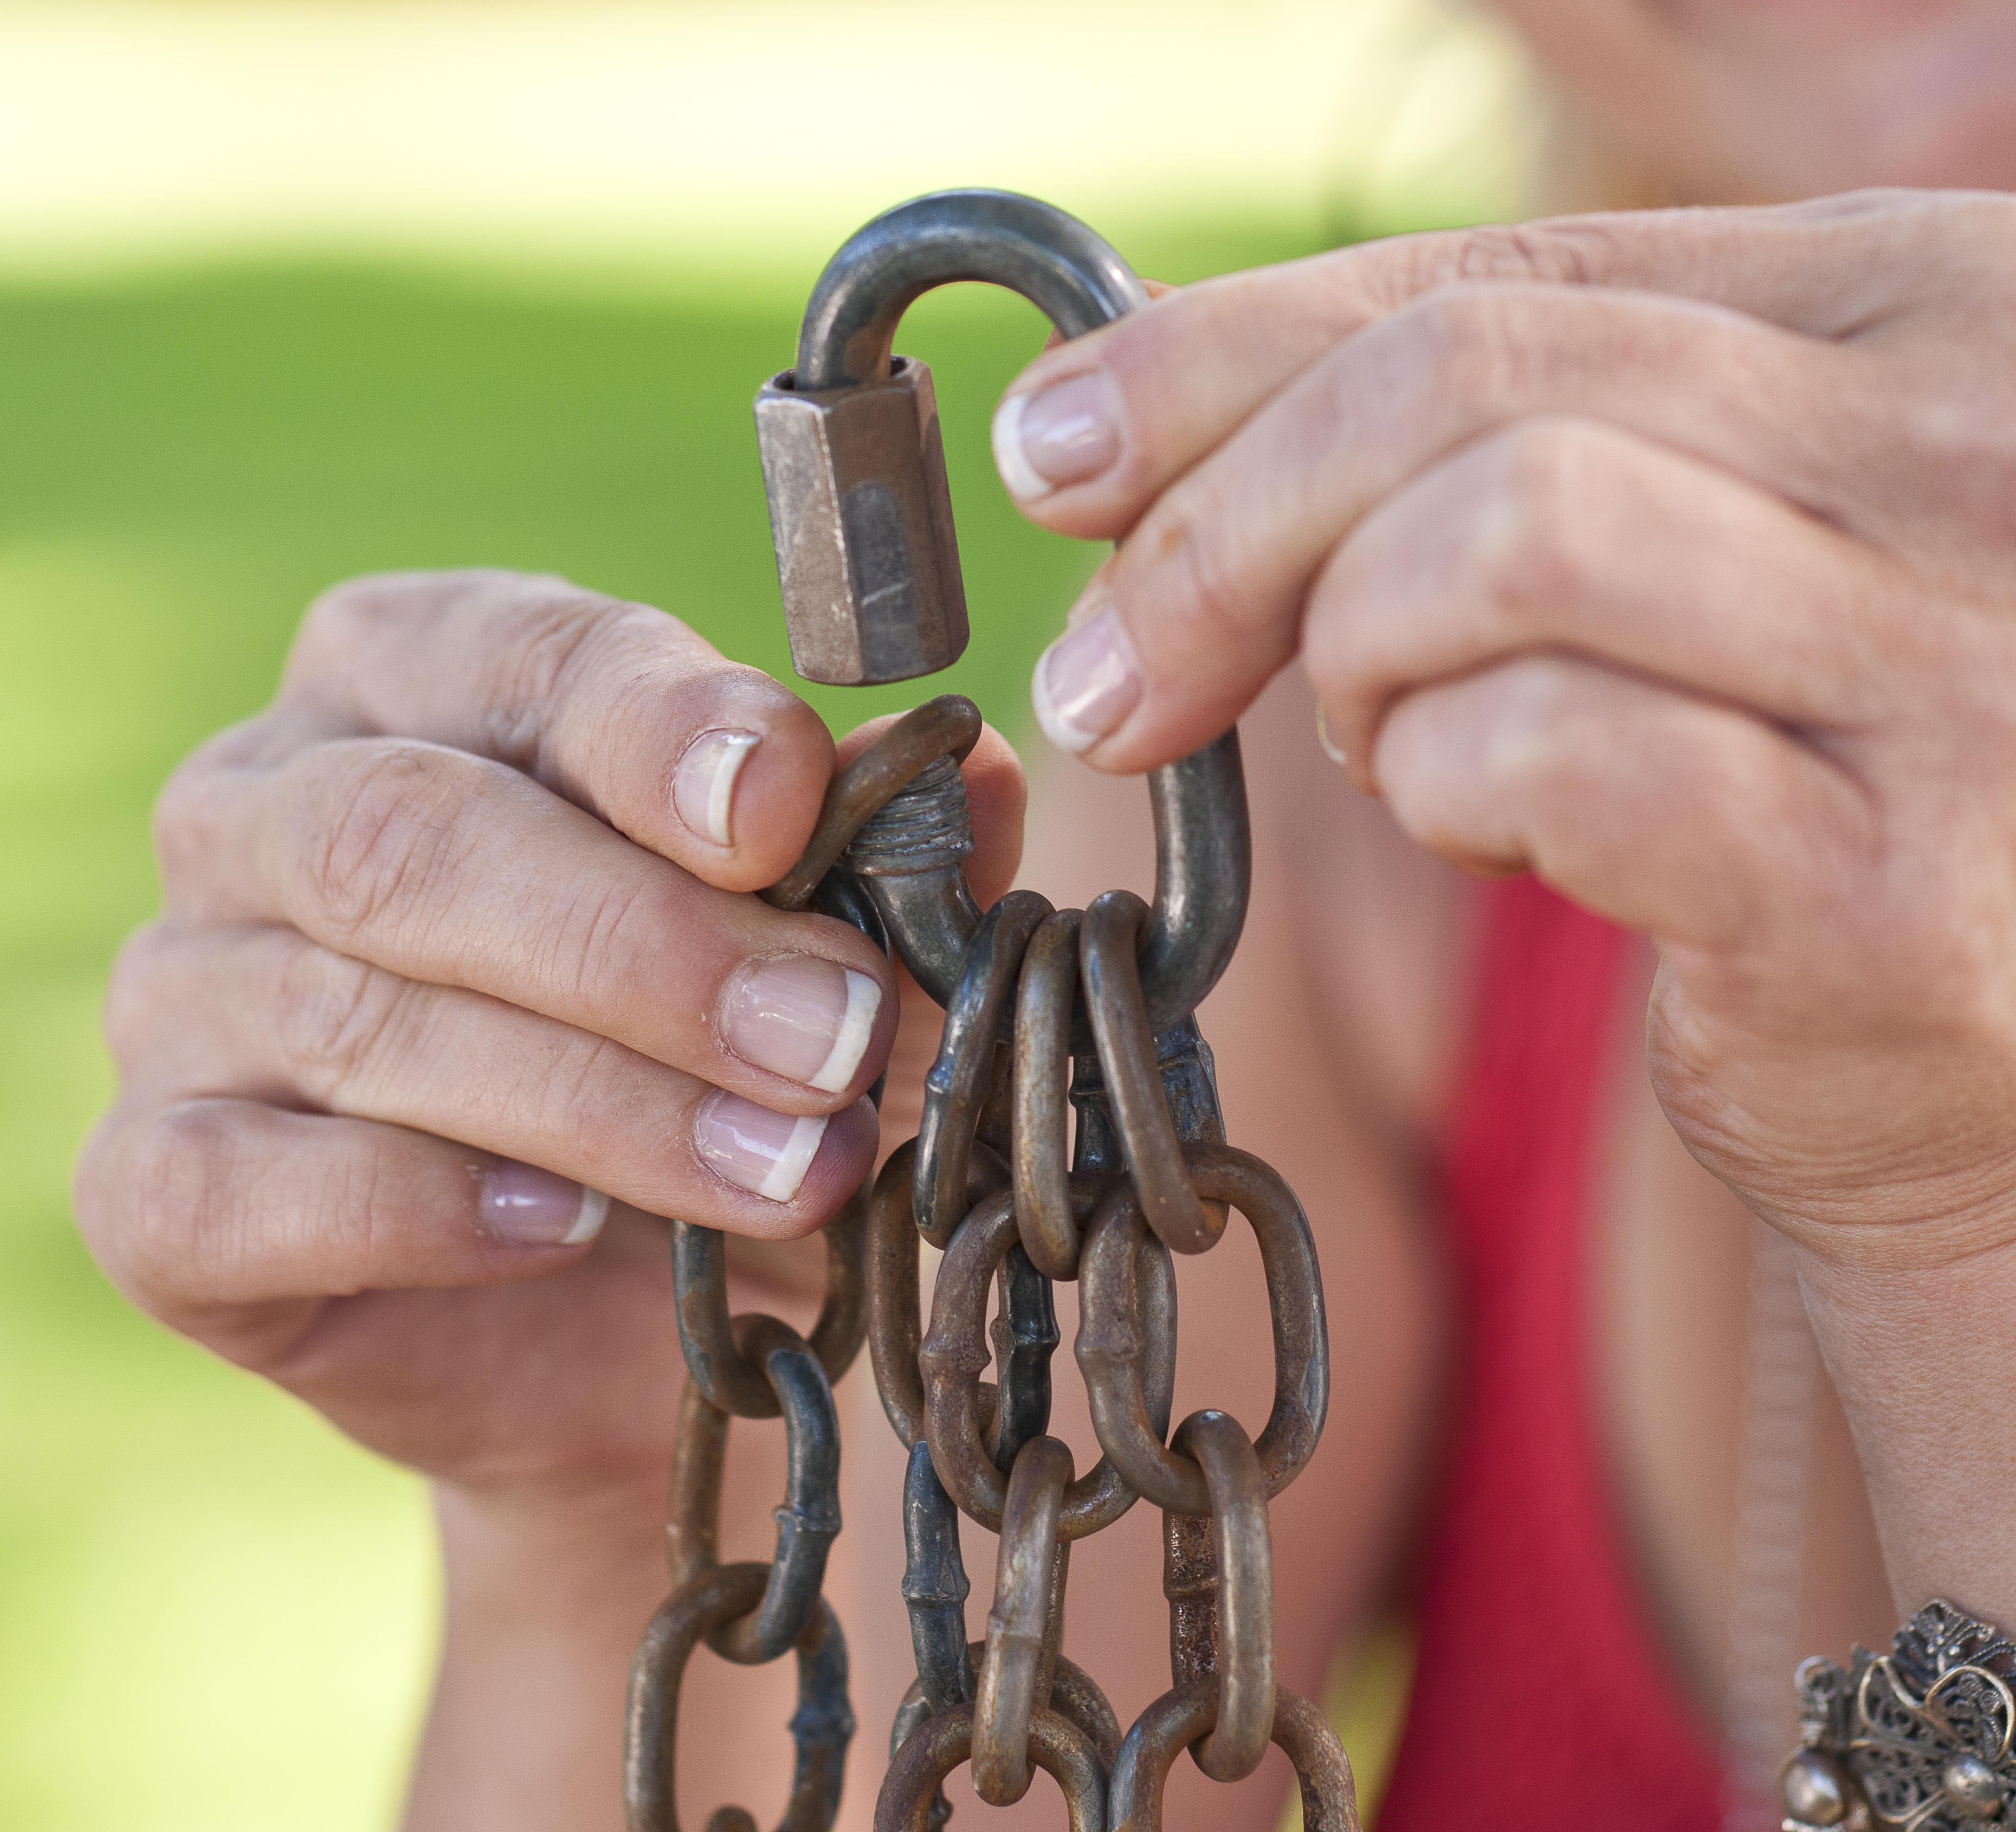 Step 3: Connect chains together